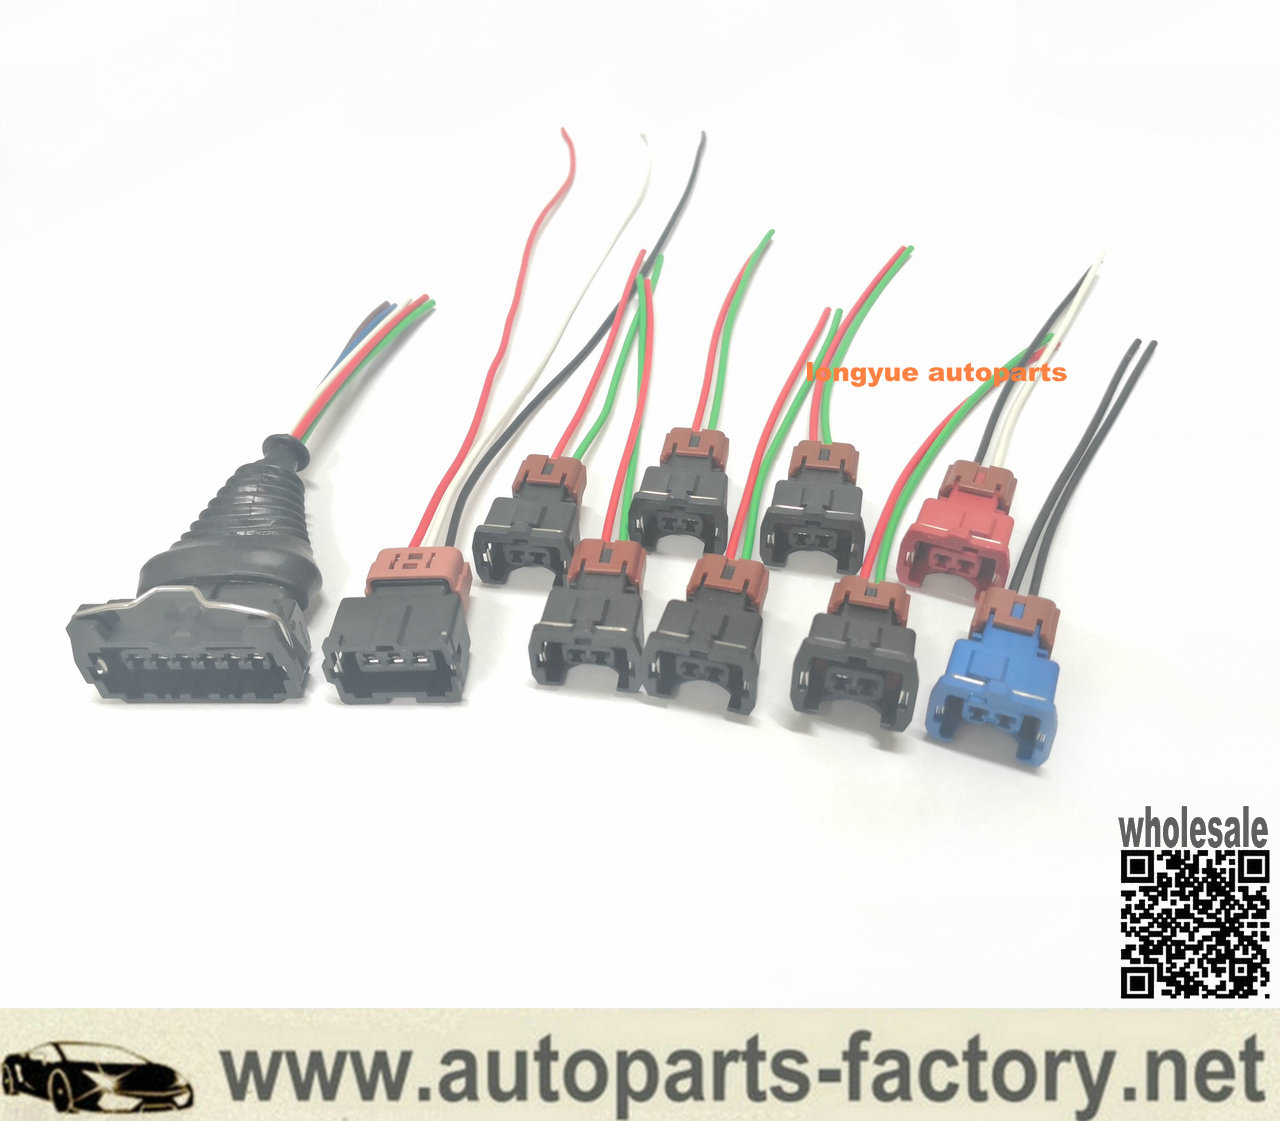 Fuel Injector MAF TPS Wiring Harness Connector Kit for Nissan 300zx z31  84-87longyue autoparts